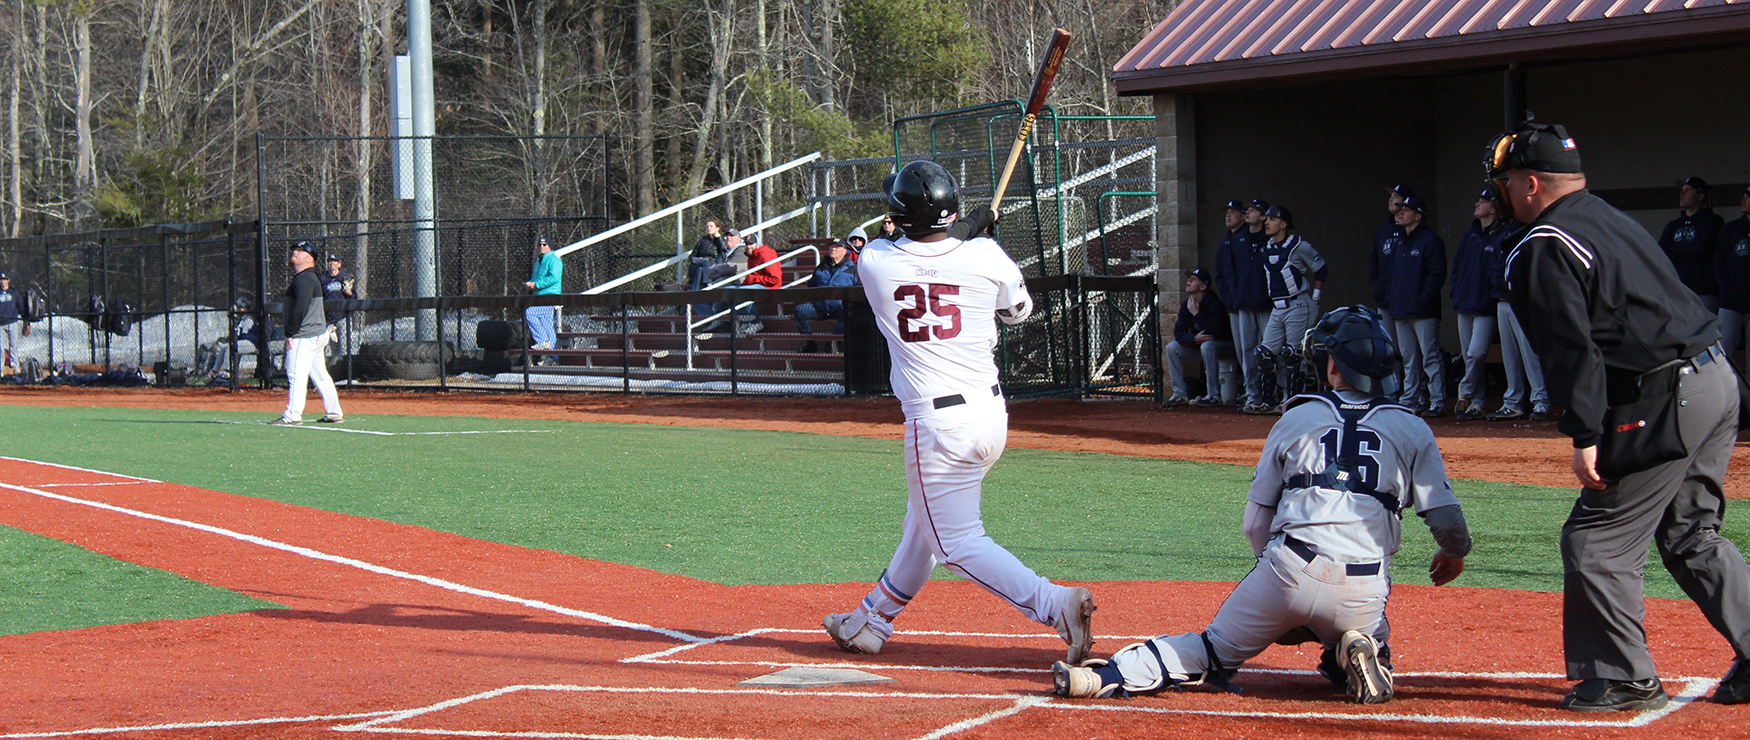 Baseball Takes Care of Business in Home Opener, Blanks Saint Anselm, 7-0